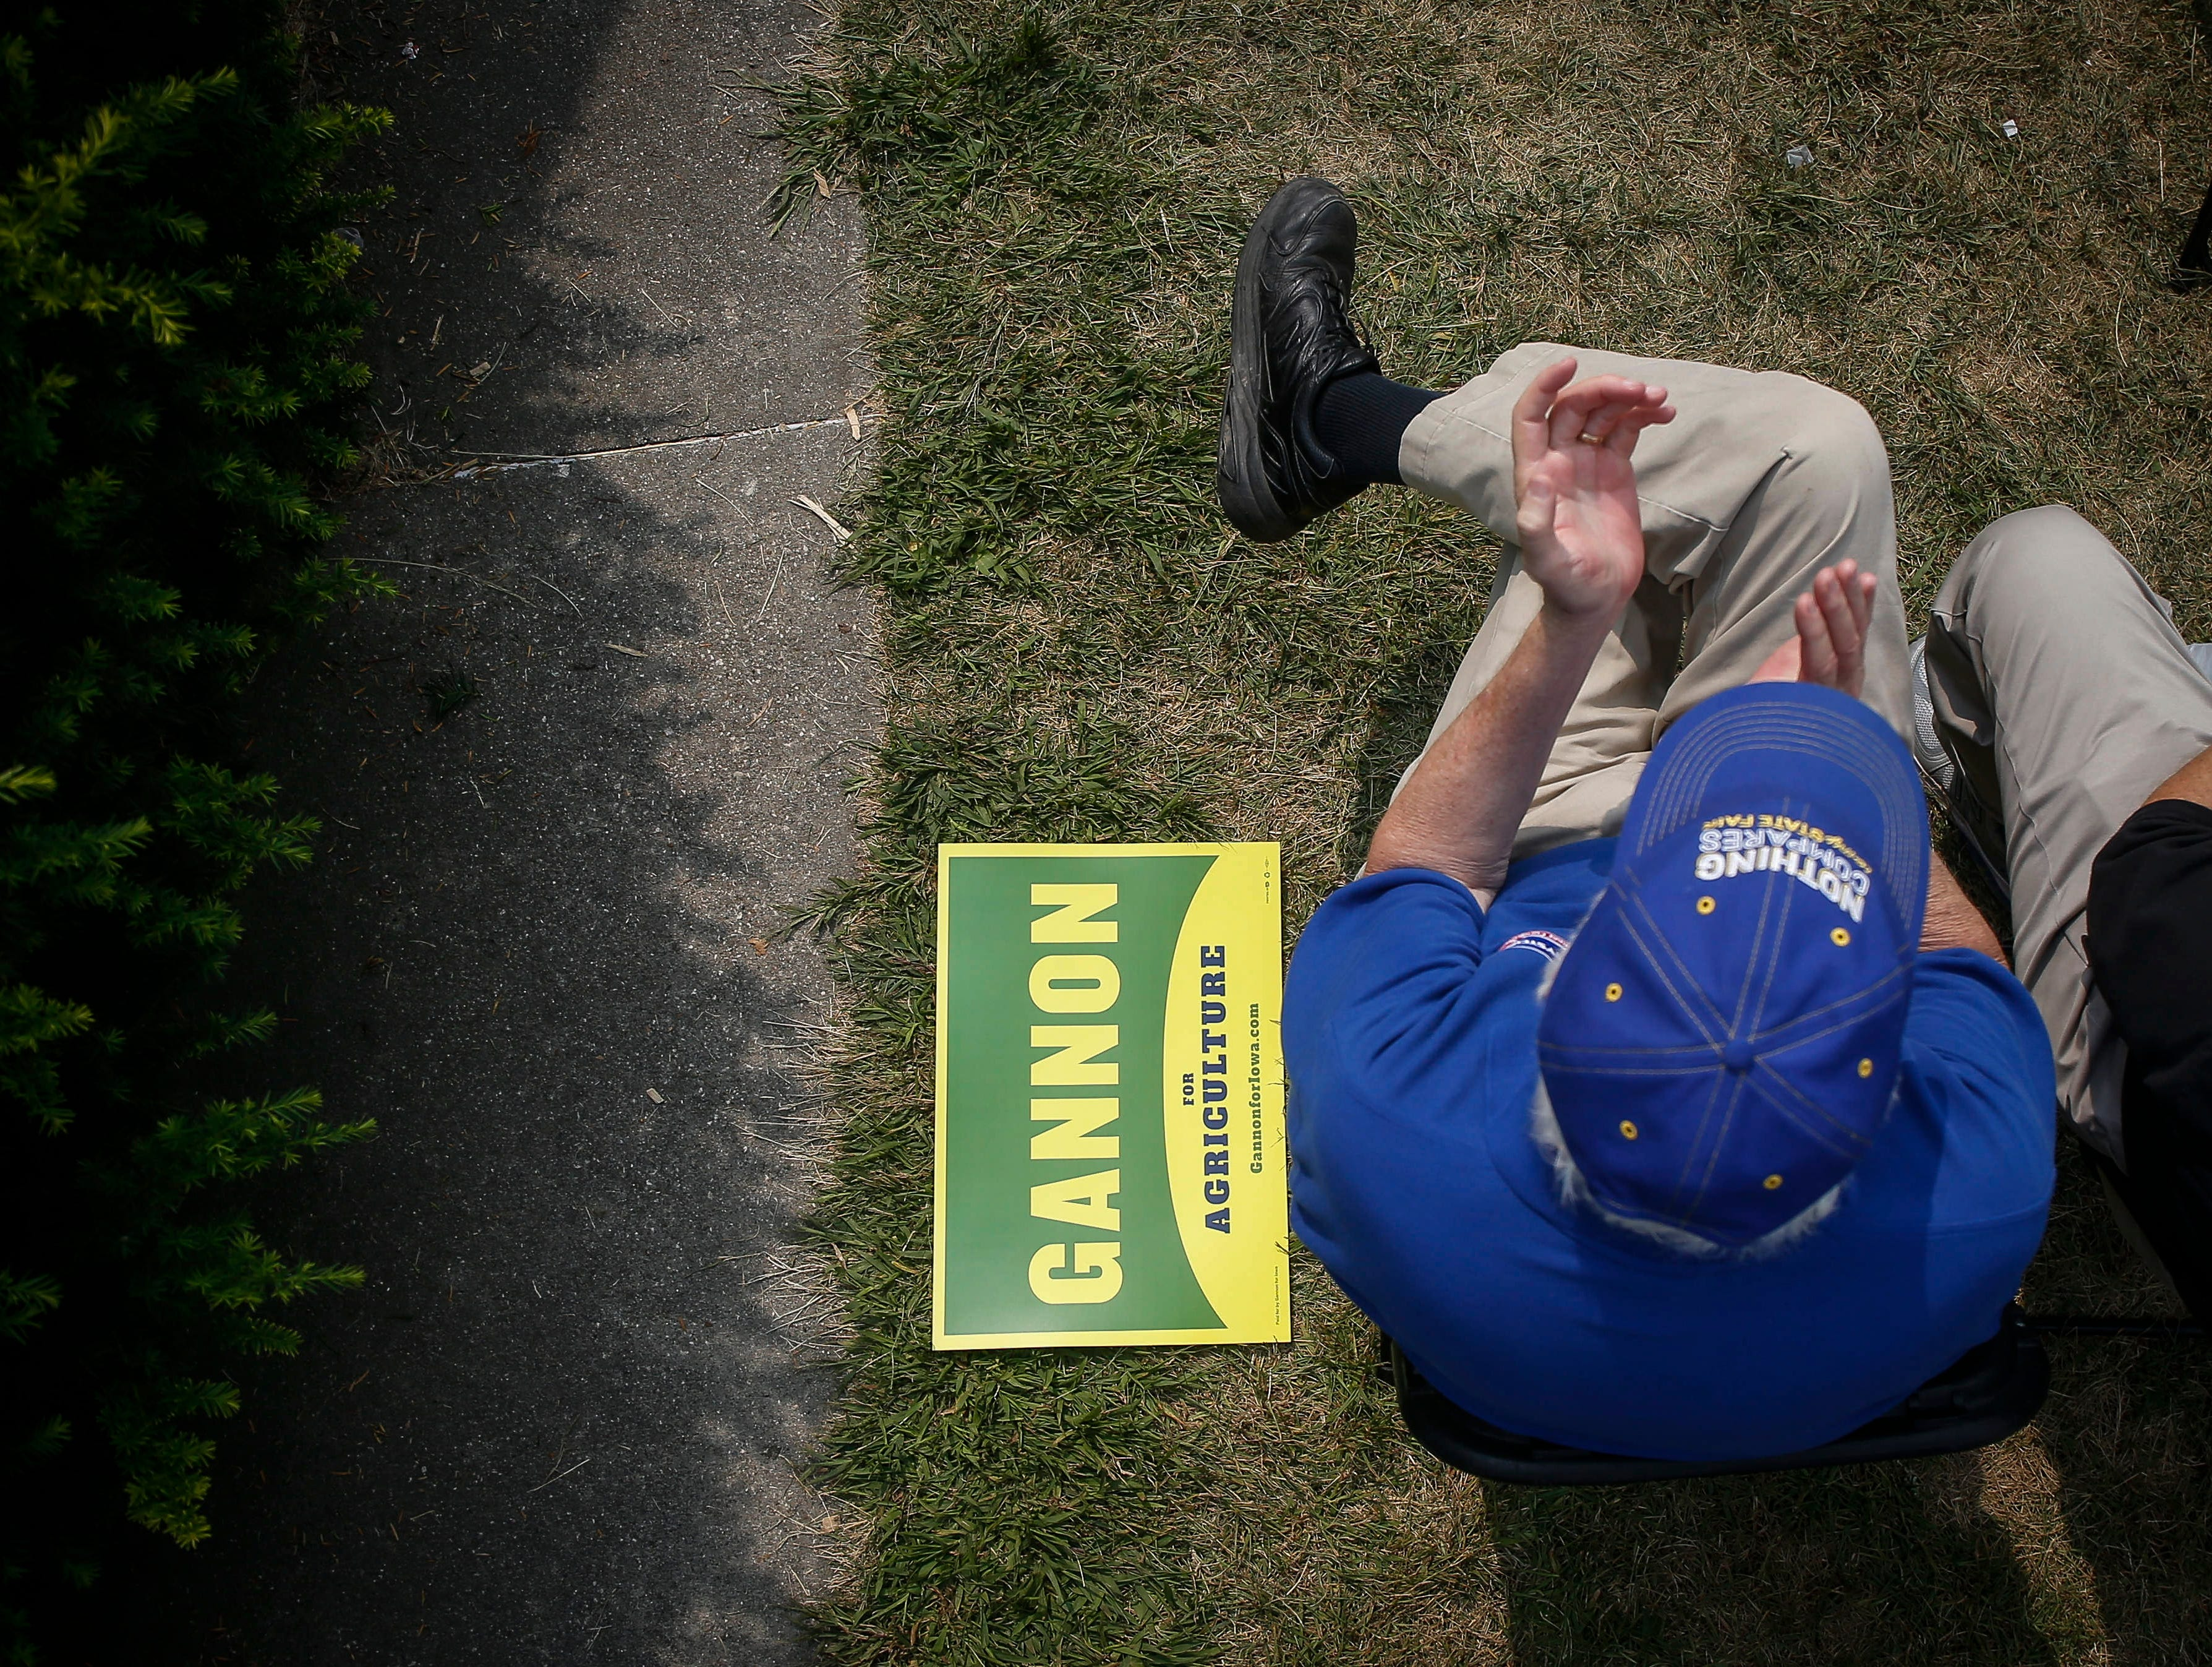 A supporter of Iowa Secretary of Agriculture candidate Tim Gannon applauds as a yard sign sits next to him during the Political Soapbox on Saturday, Aug. 11, 2018, during the Iowa State Fair in Des Moines.